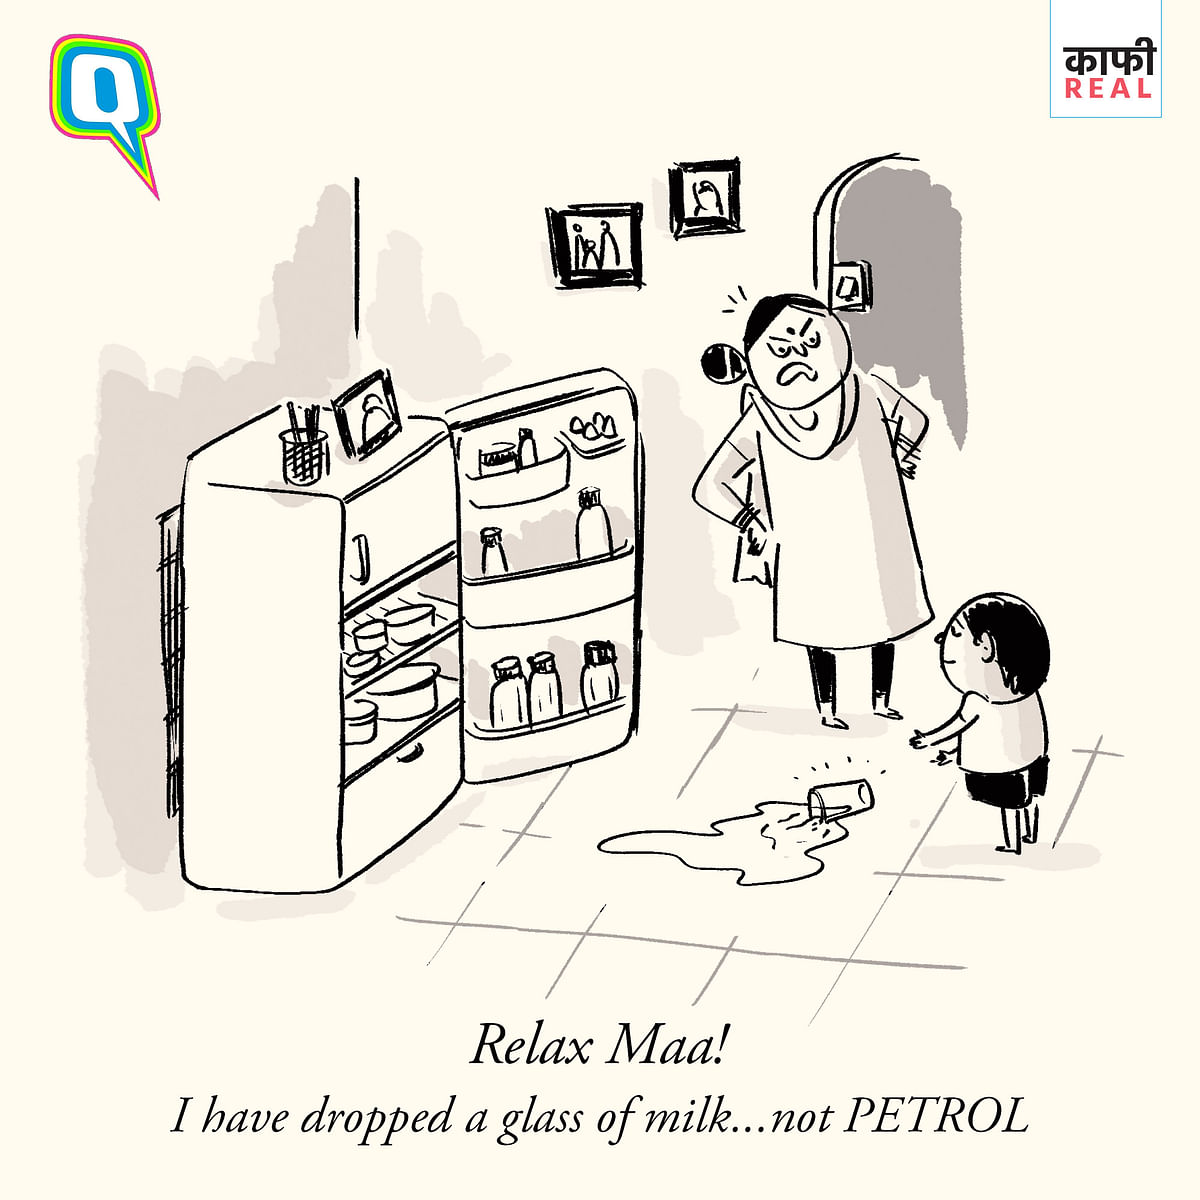 Compared to rising petrol prices, guess it's not so bad if your child drops a little milk, is it?